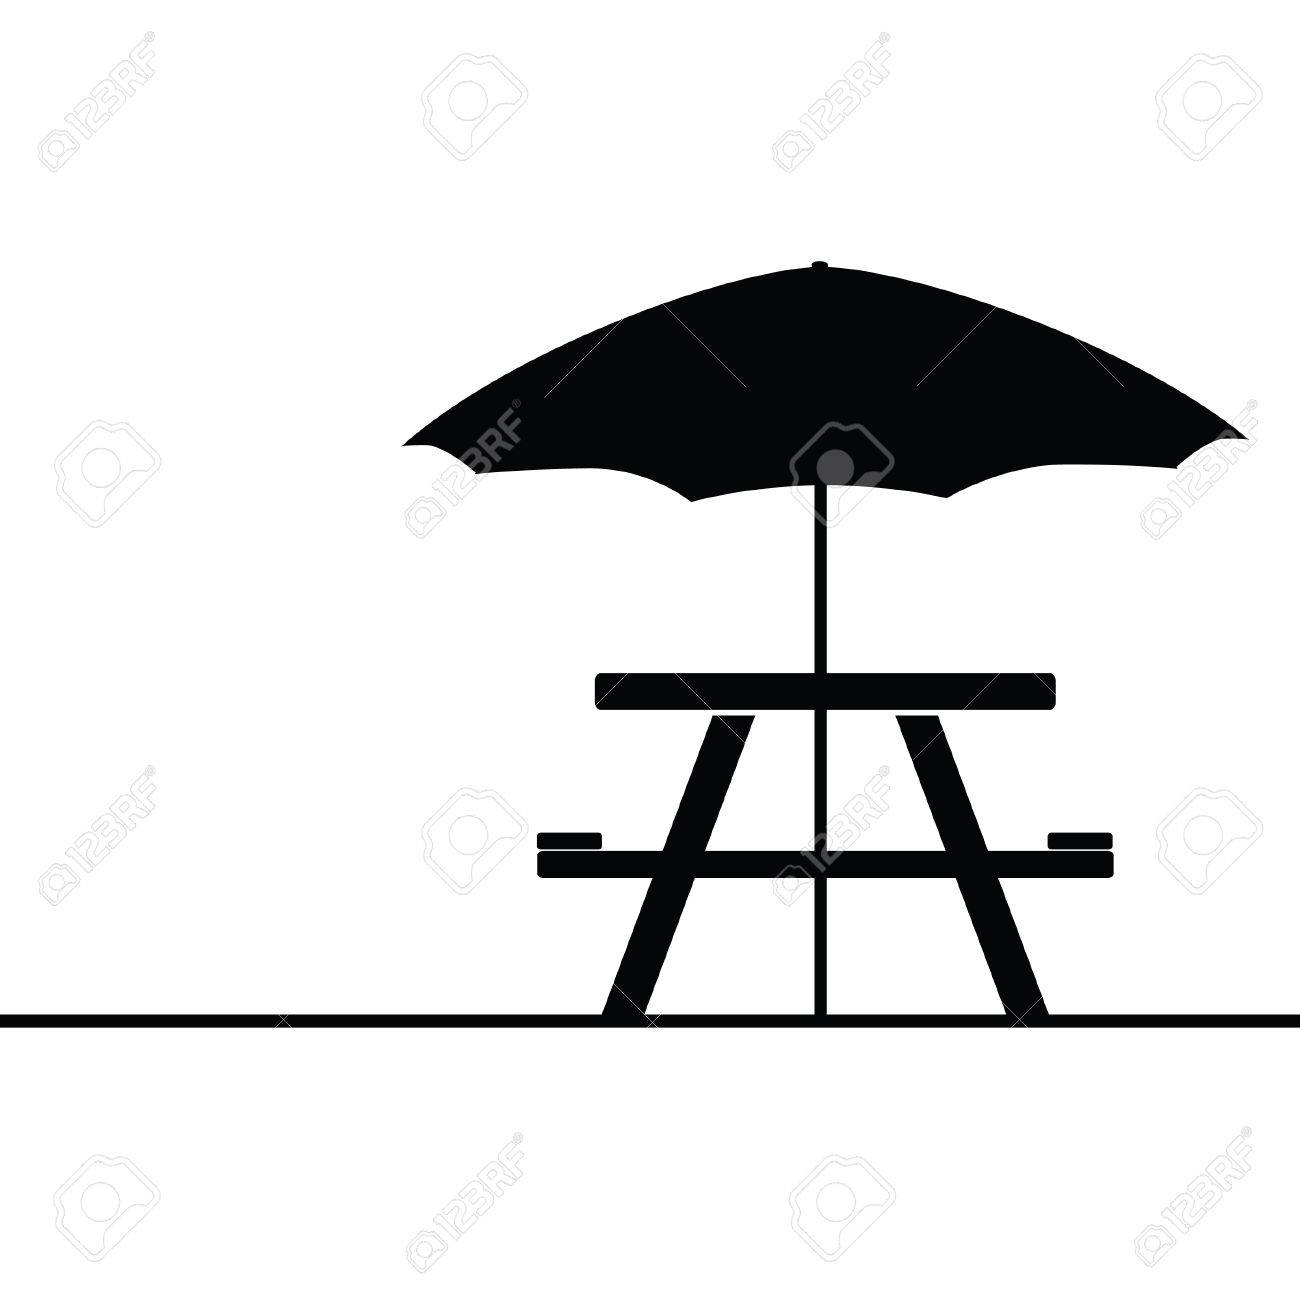 Camping and picnic table icon vector illustration royalty free camping and picnic table icon vector illustration stock vector 33391338 biocorpaavc